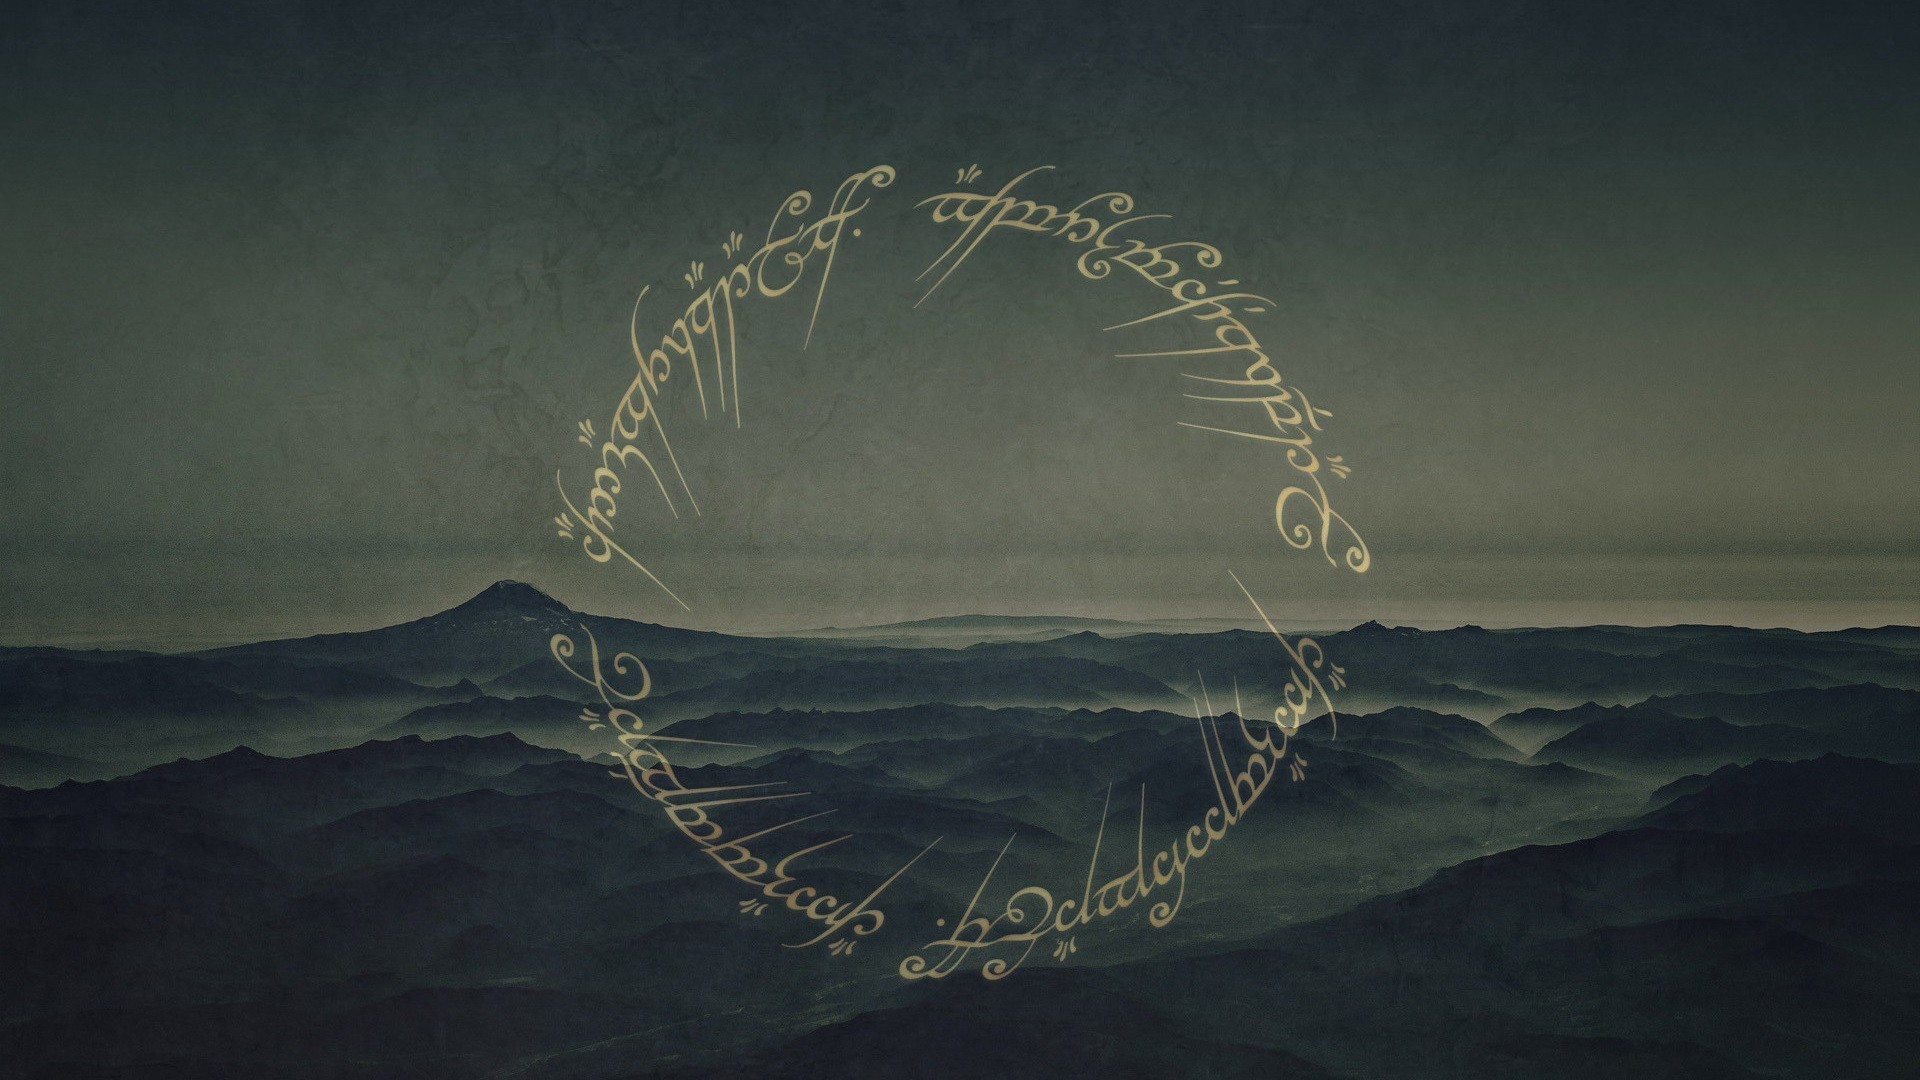 Free Download Download Lord Of The Rings Wallpapers 1920x1080